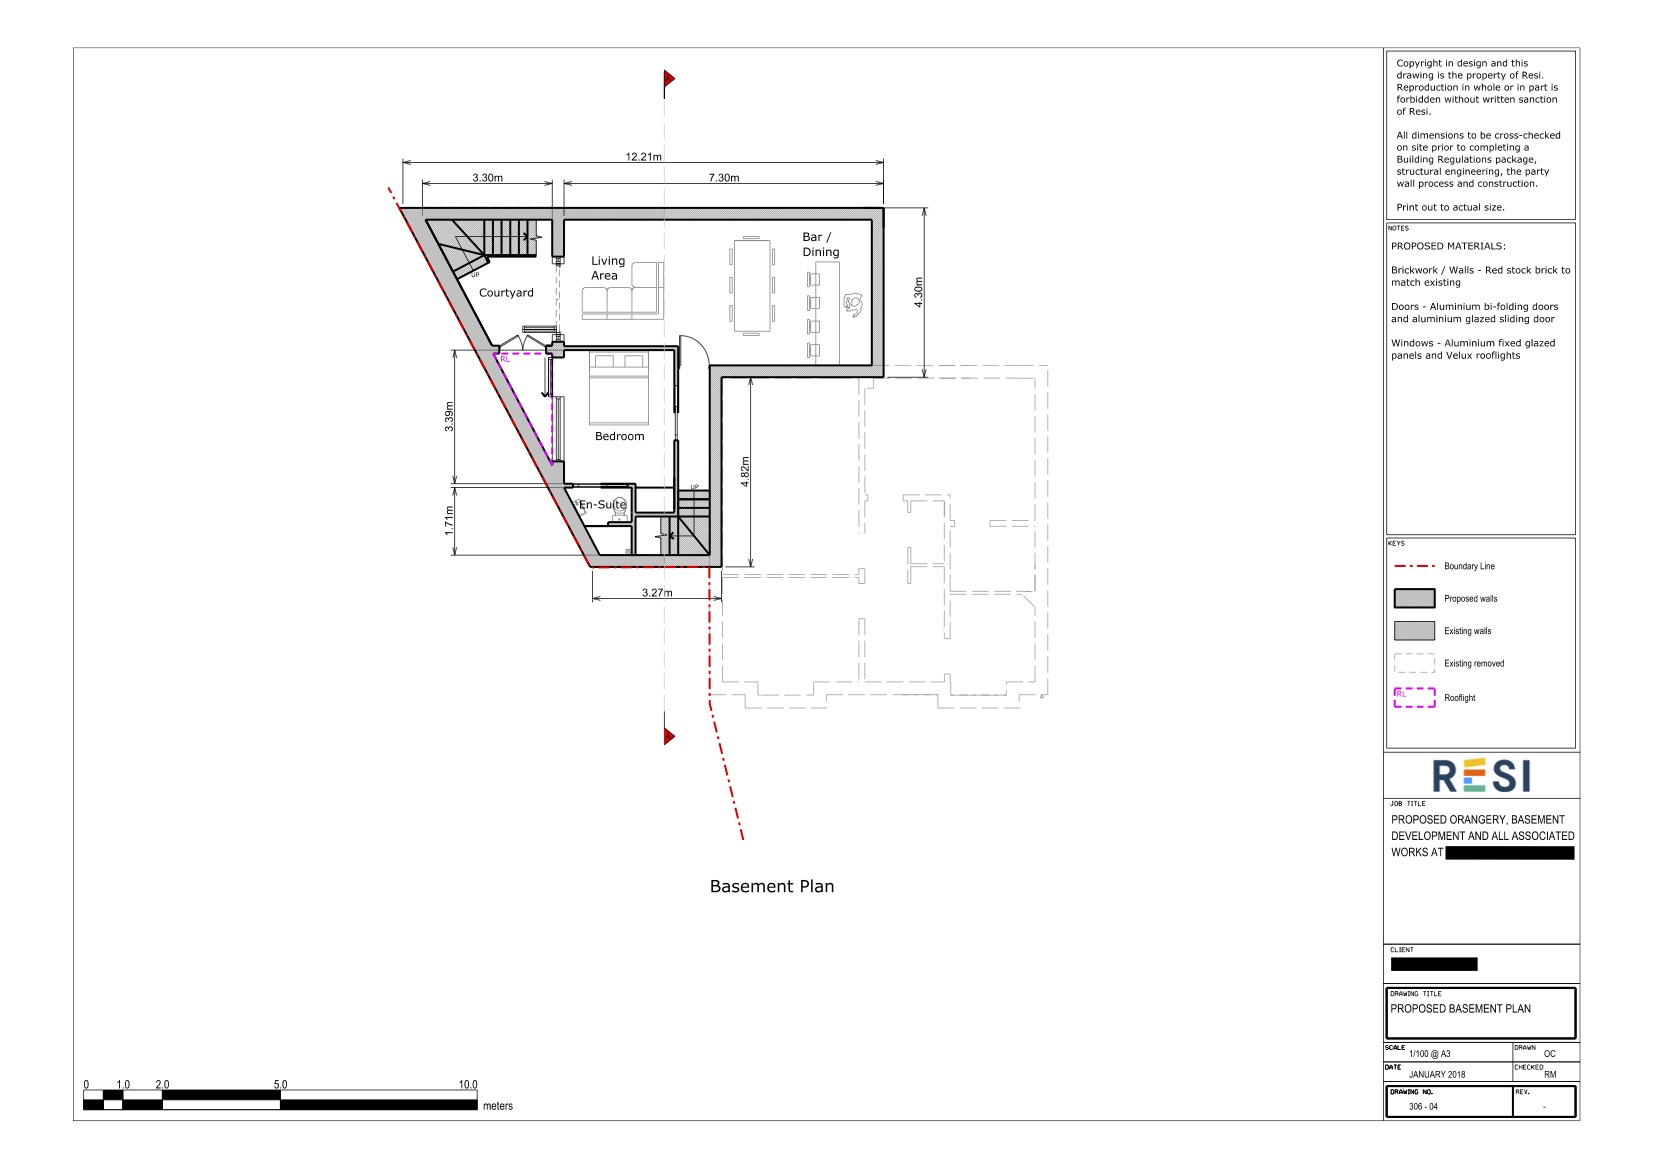 Architectural drawing package rev a   proposed basement plan